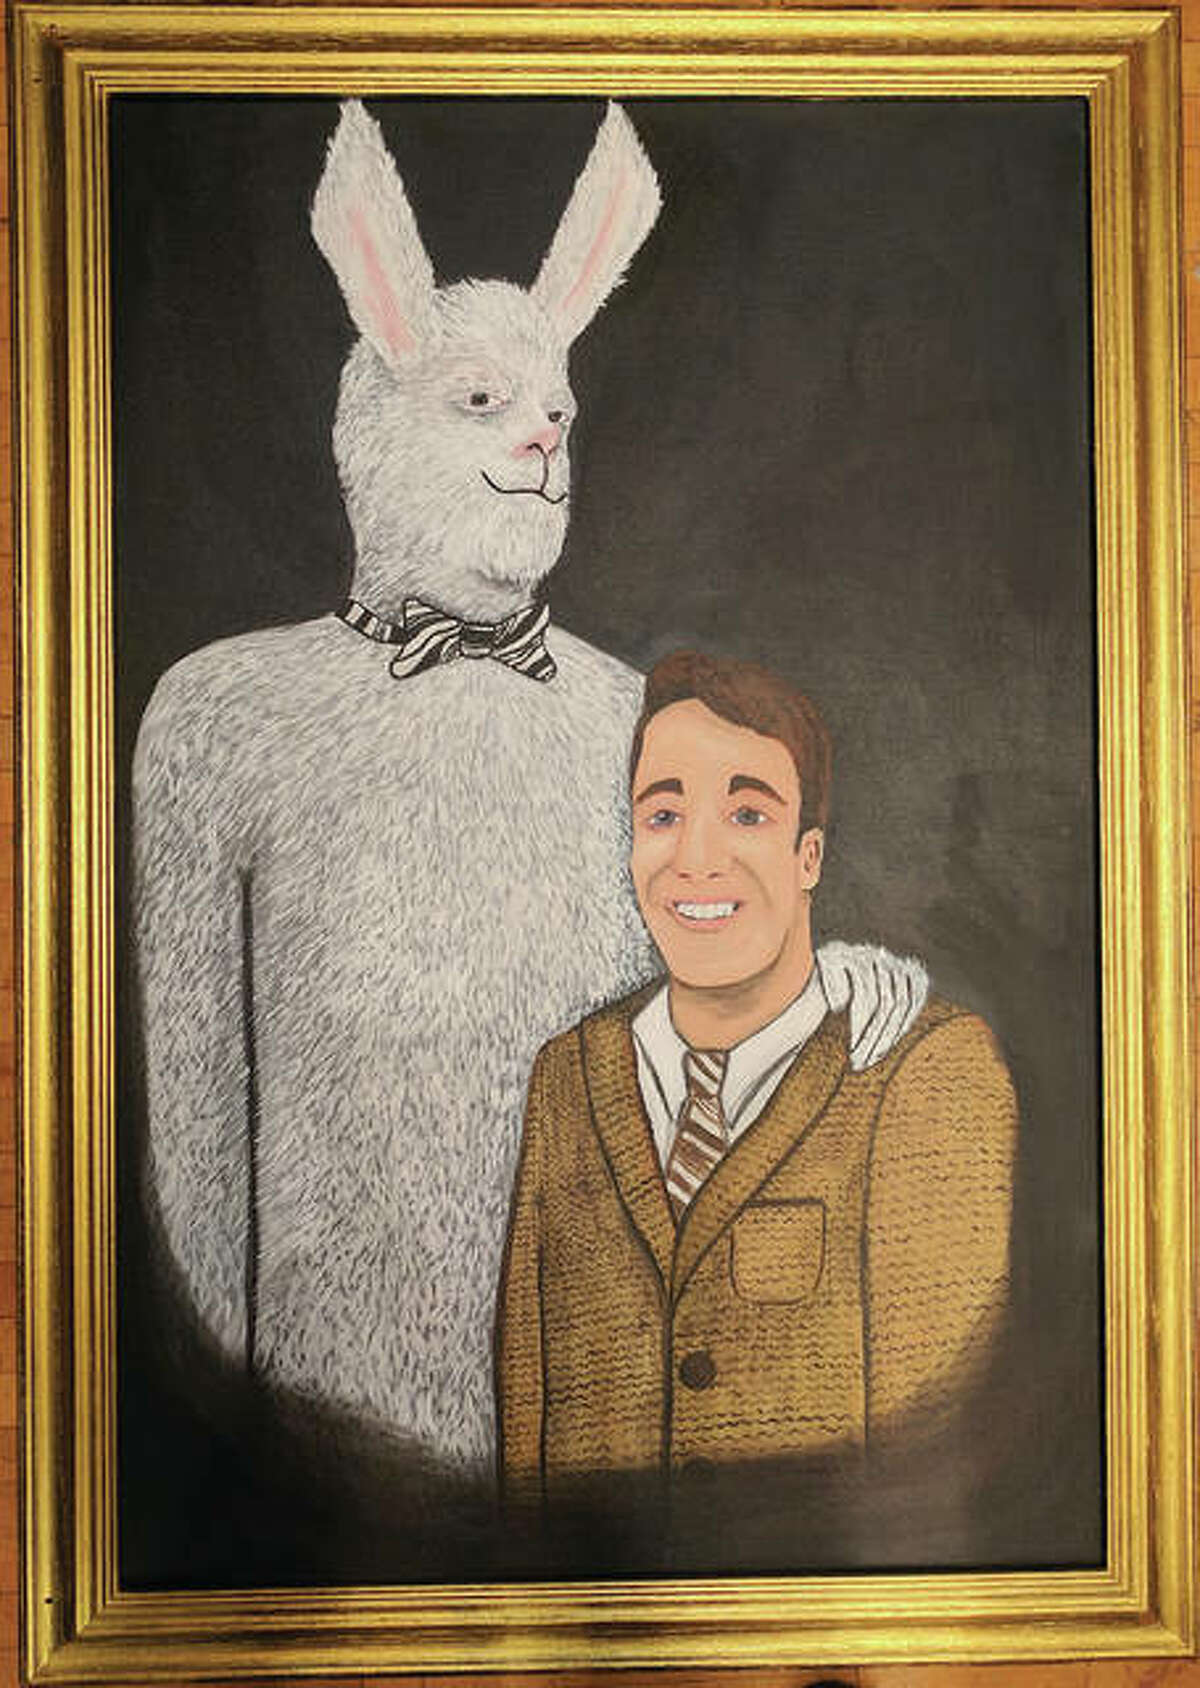 A portrait of Elwood P. Dowd and Harvey painted by Marquette Catholic High School's own Molly Velikis of the art department.